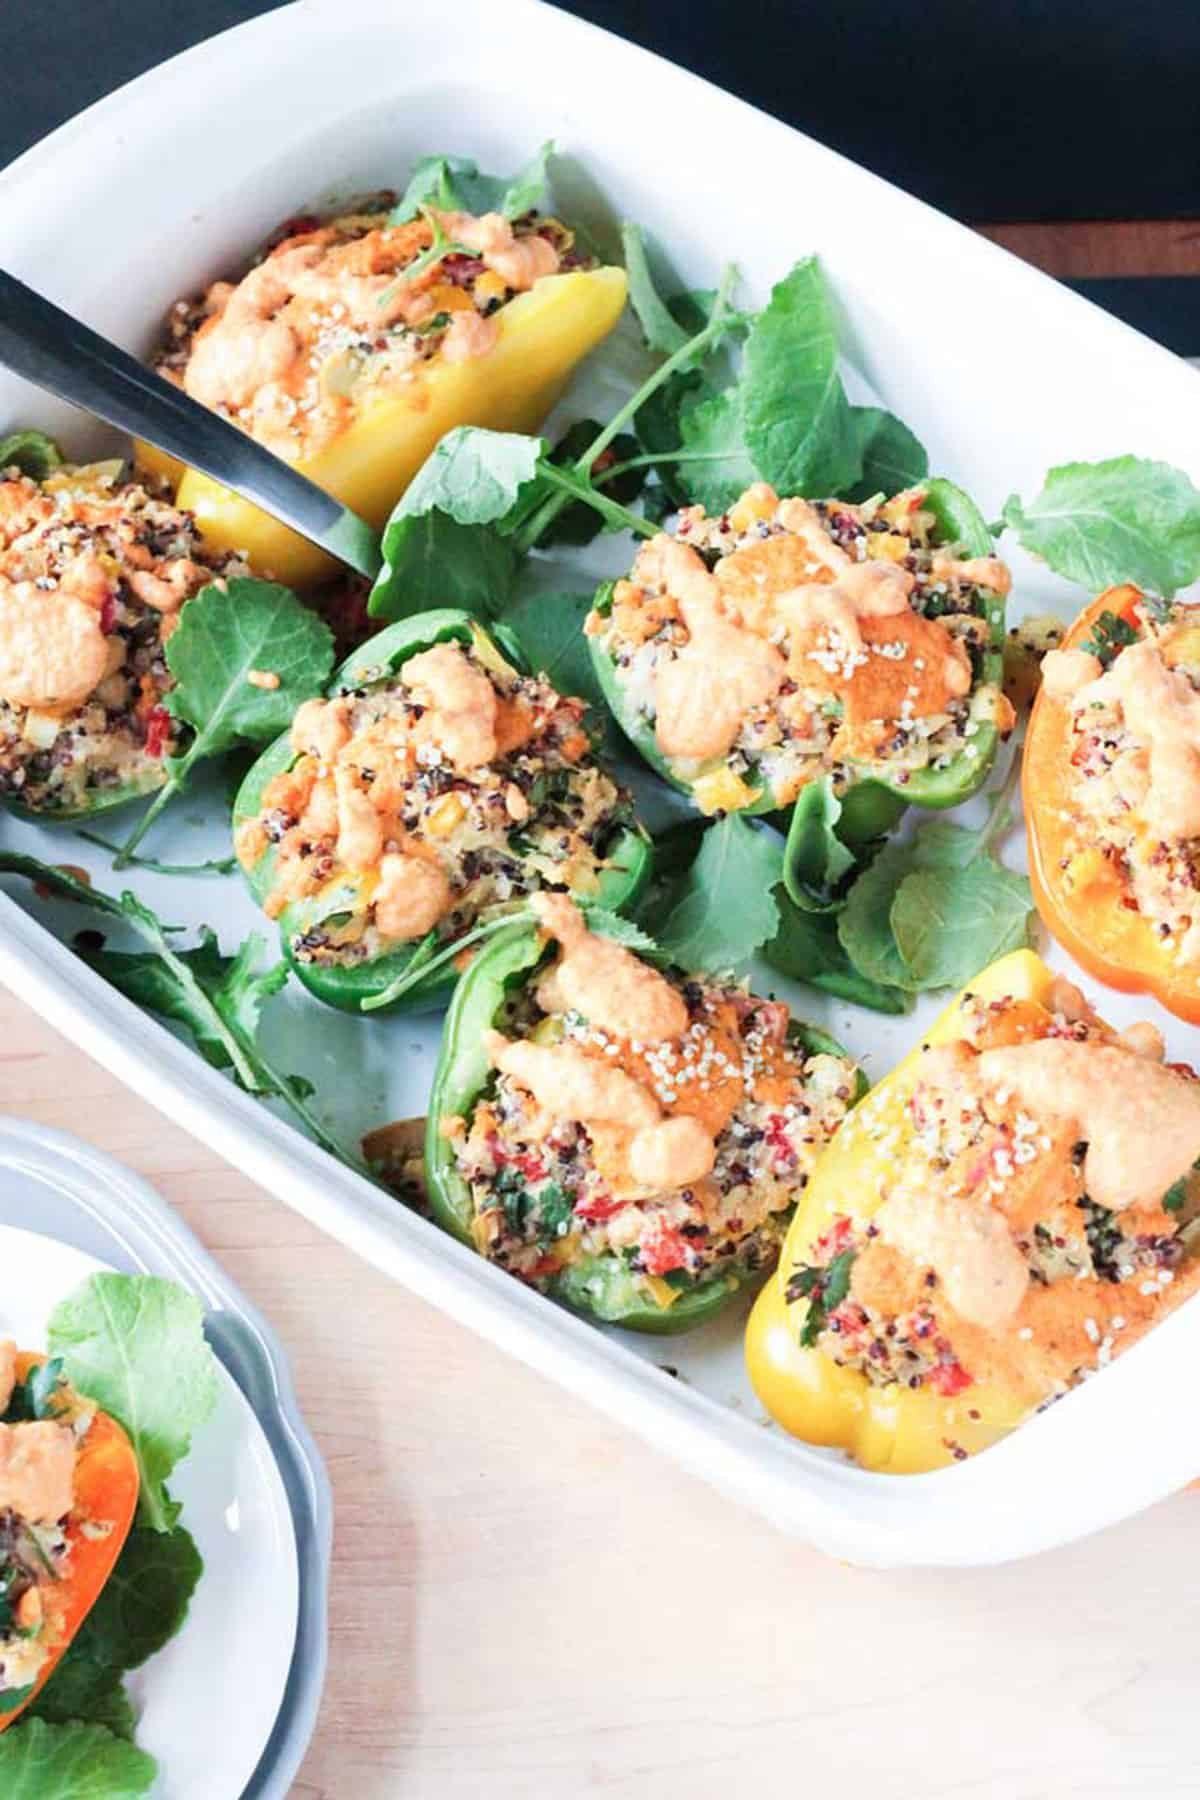 White casserole dish of stuffed peppers on top of fresh baby kale.